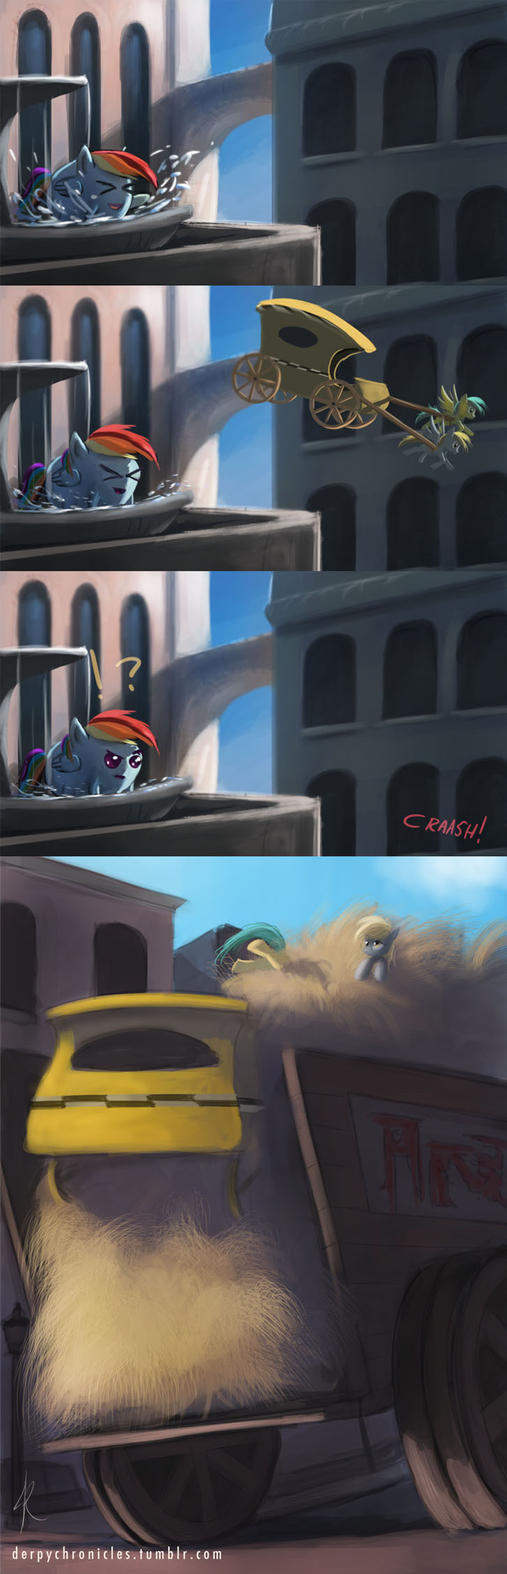 Derpy Chronicles - crash landing by Raikoh-illust